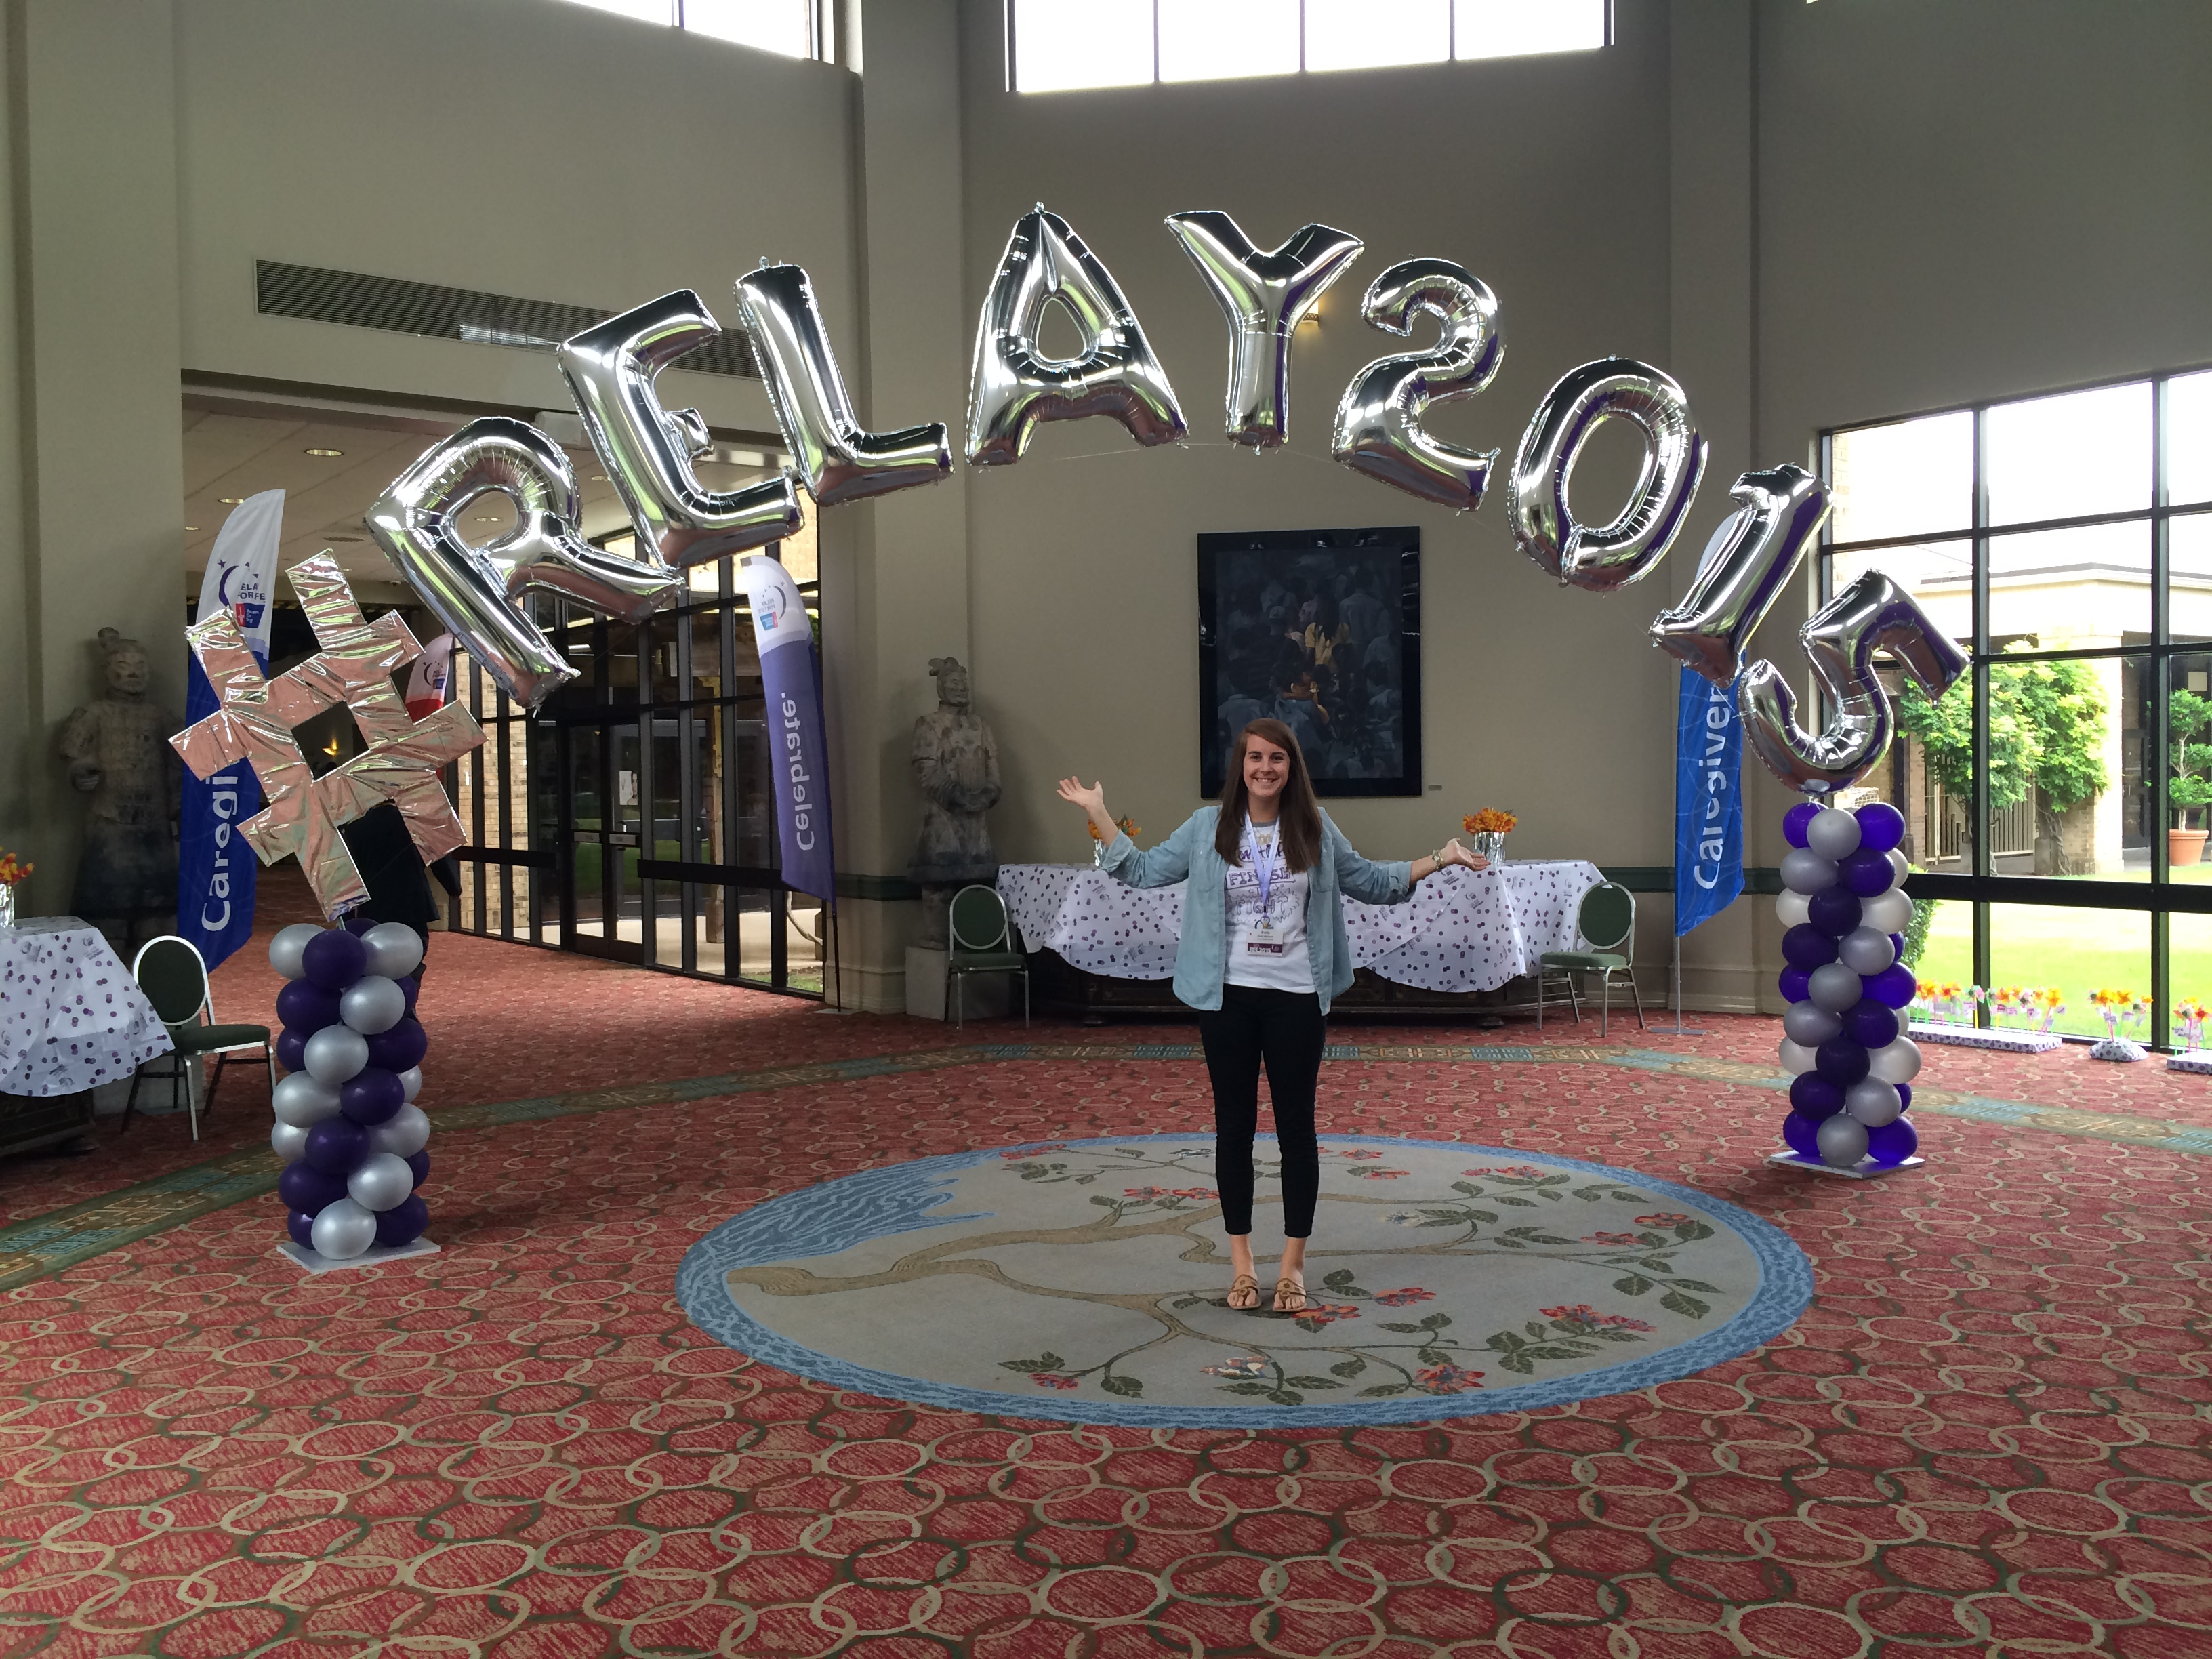 Emily McCloud, director of Relay For Life at Virginia Tech, poses with balloons that spell out #RELAY 2015.